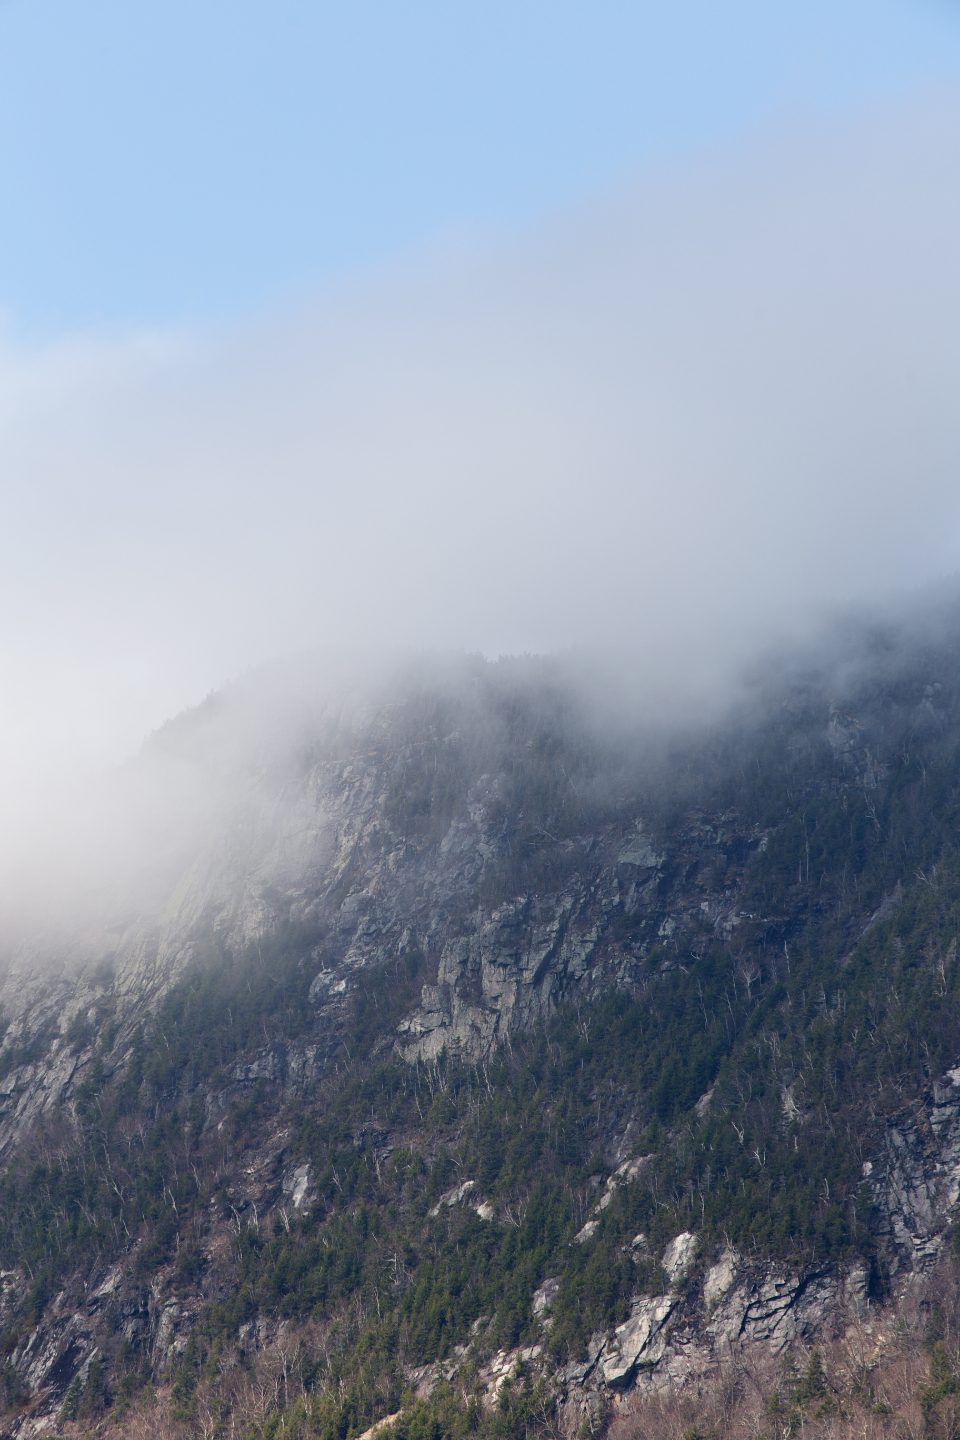 mountain landscape terrain climate nature outdoors environment weather clouds rocky mist fog sky